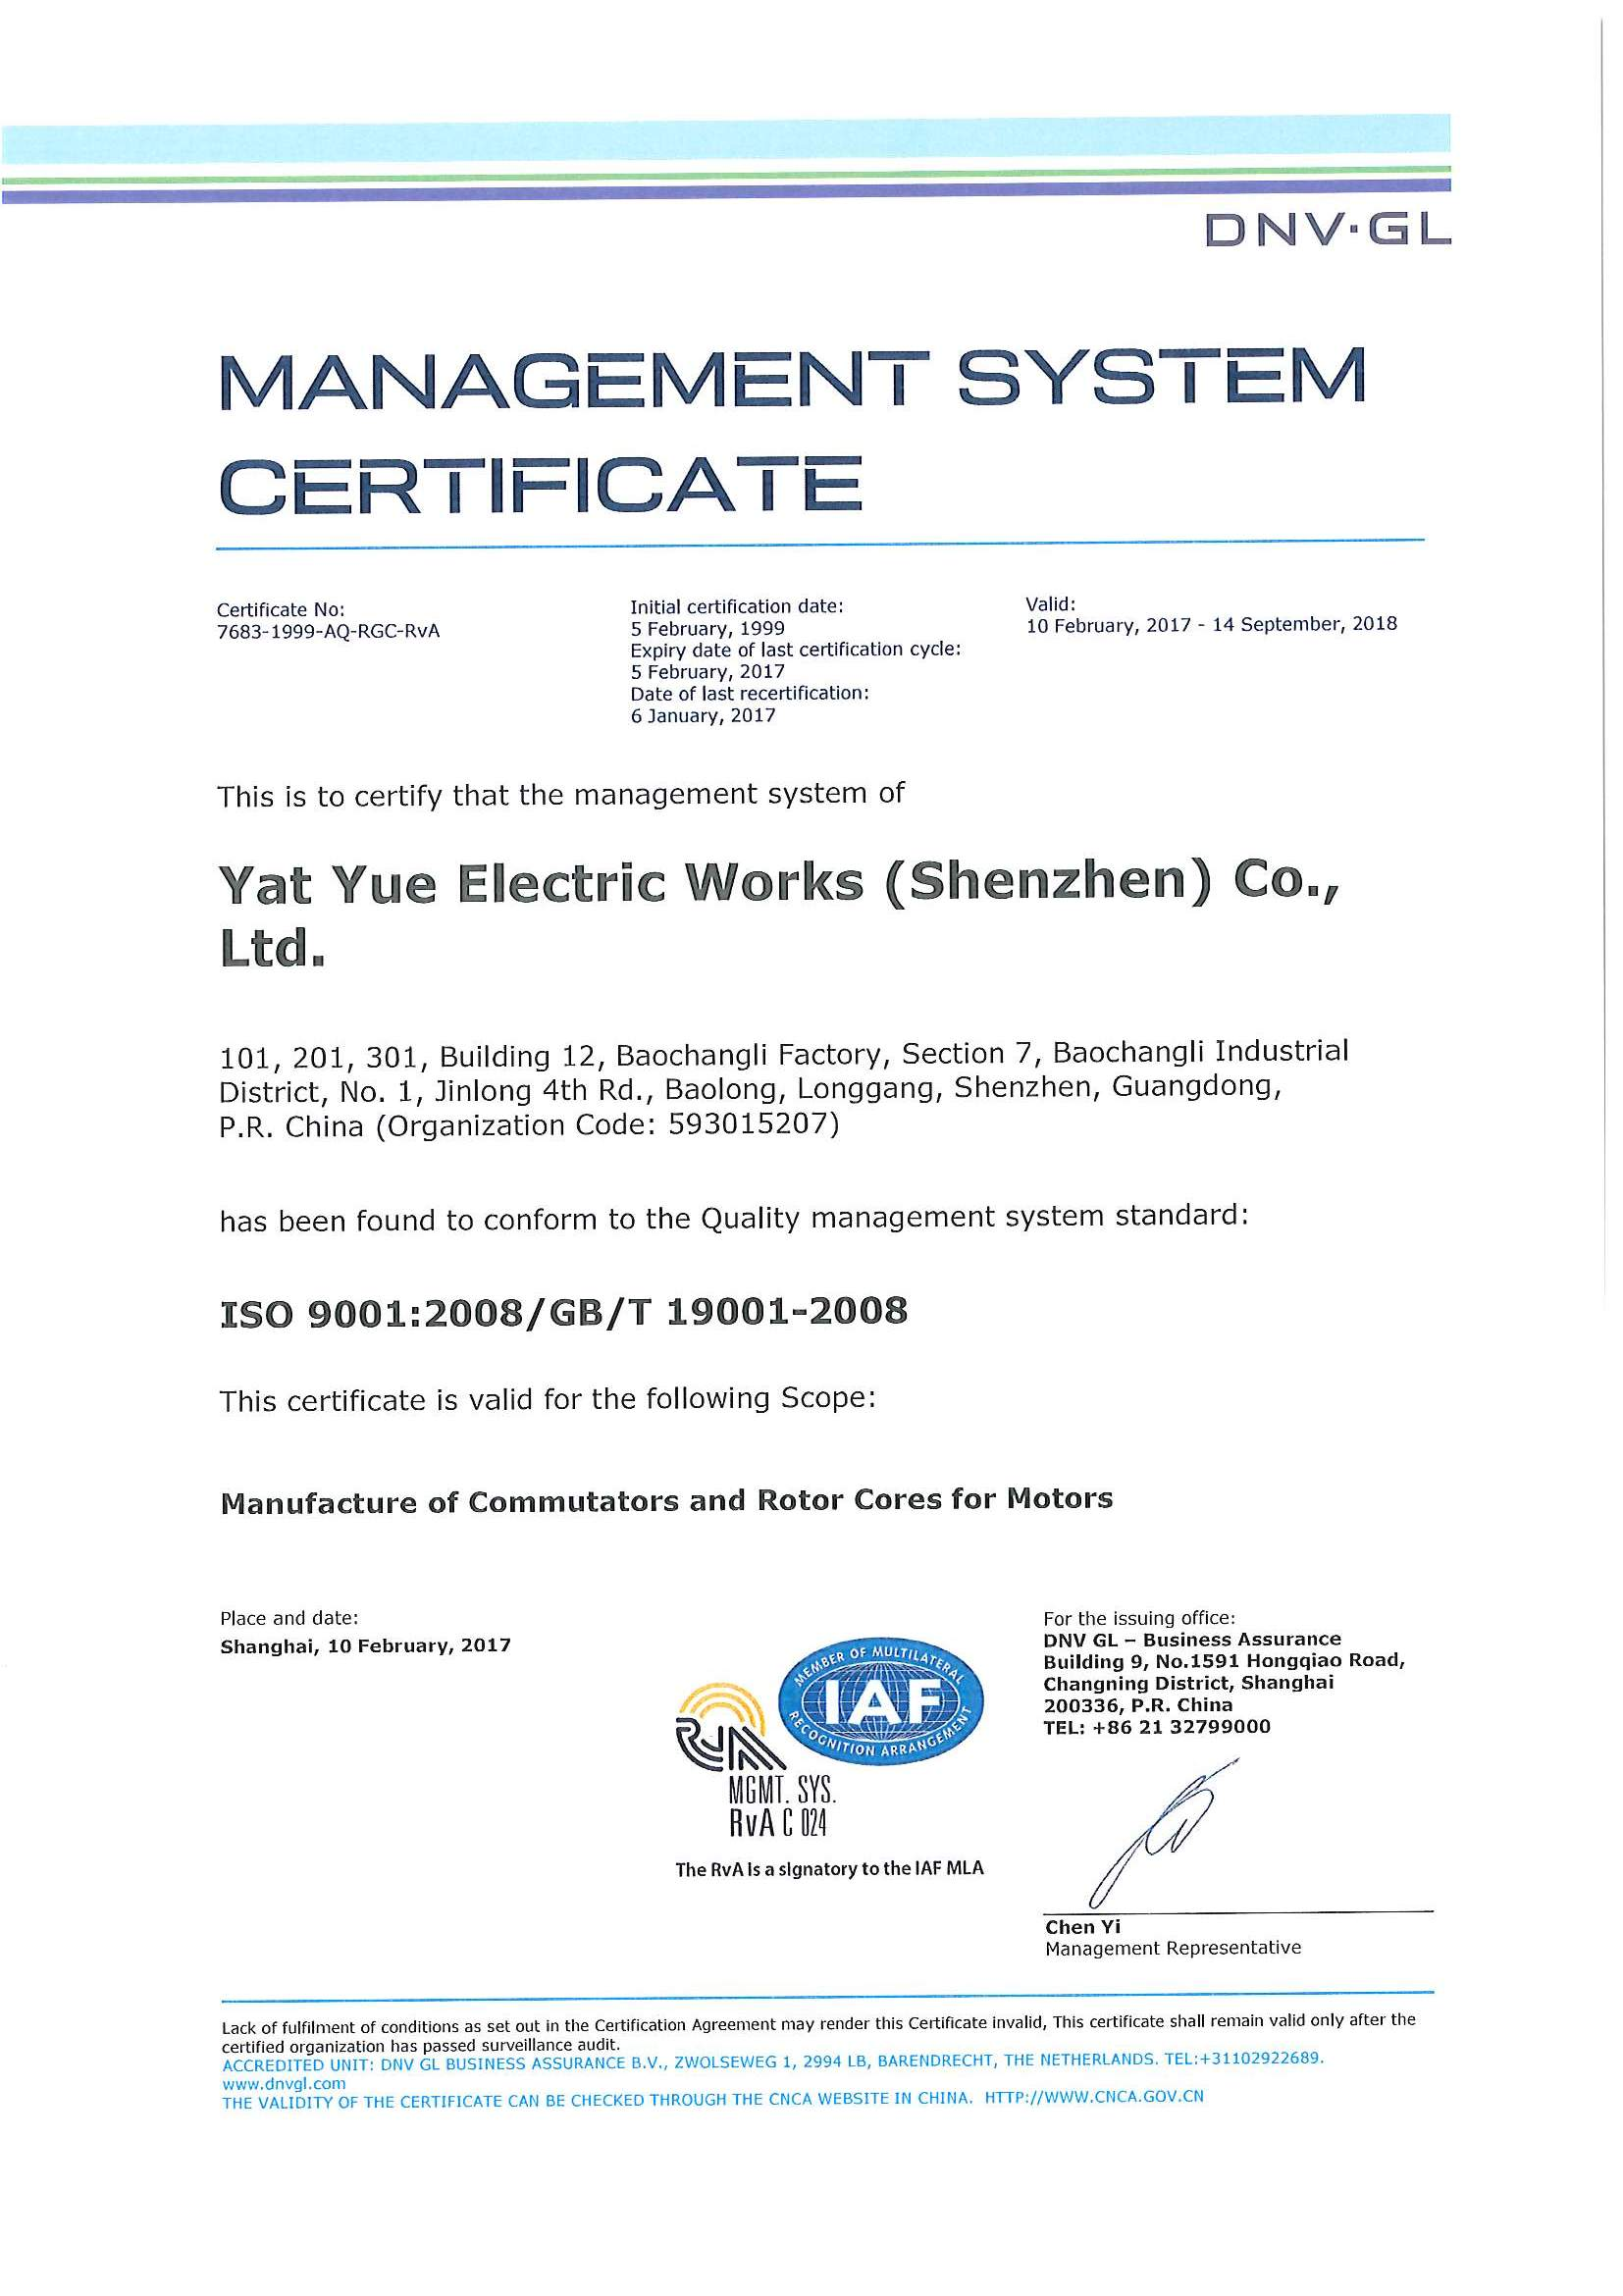 New ISO9001 Certificate